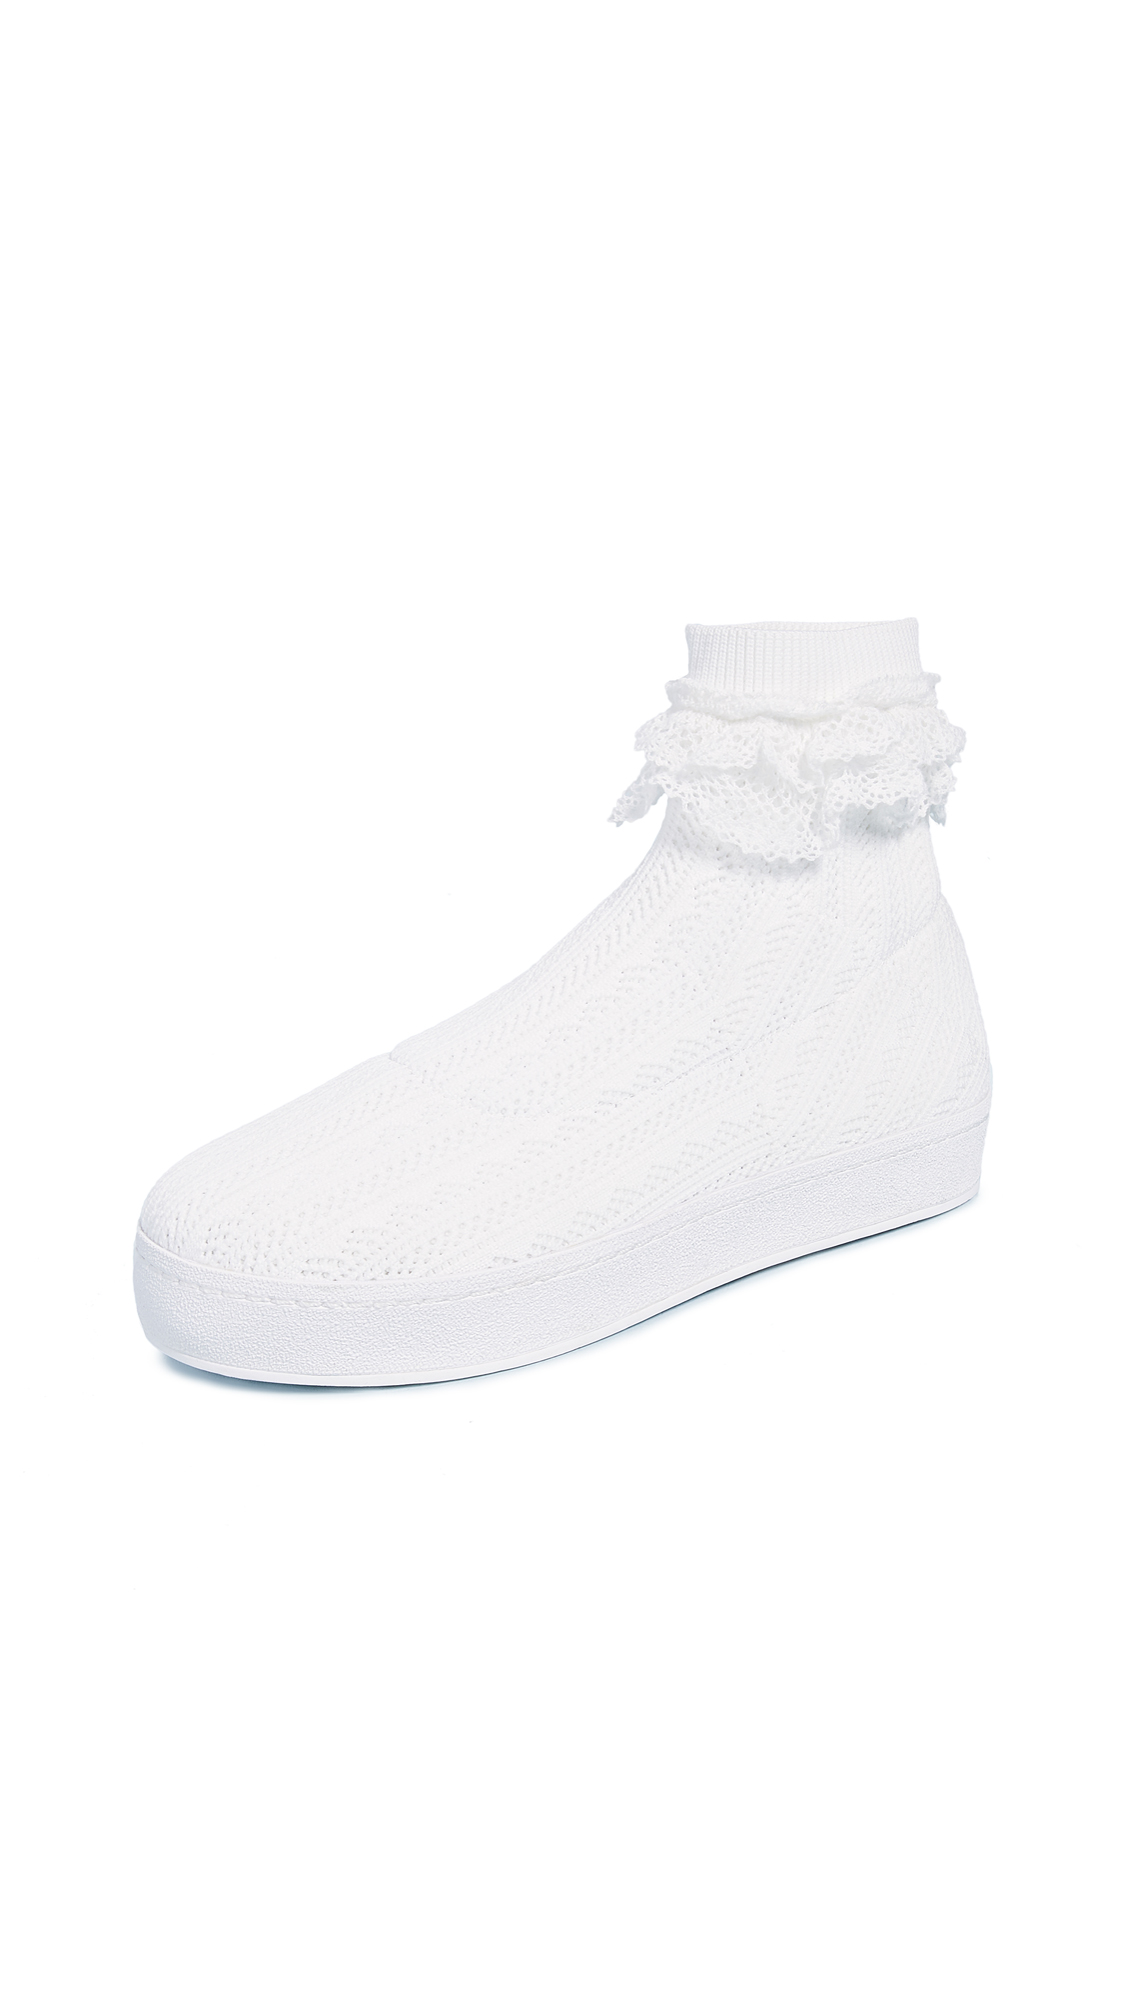 Opening Ceremony Bobby Lace Sneakers - White